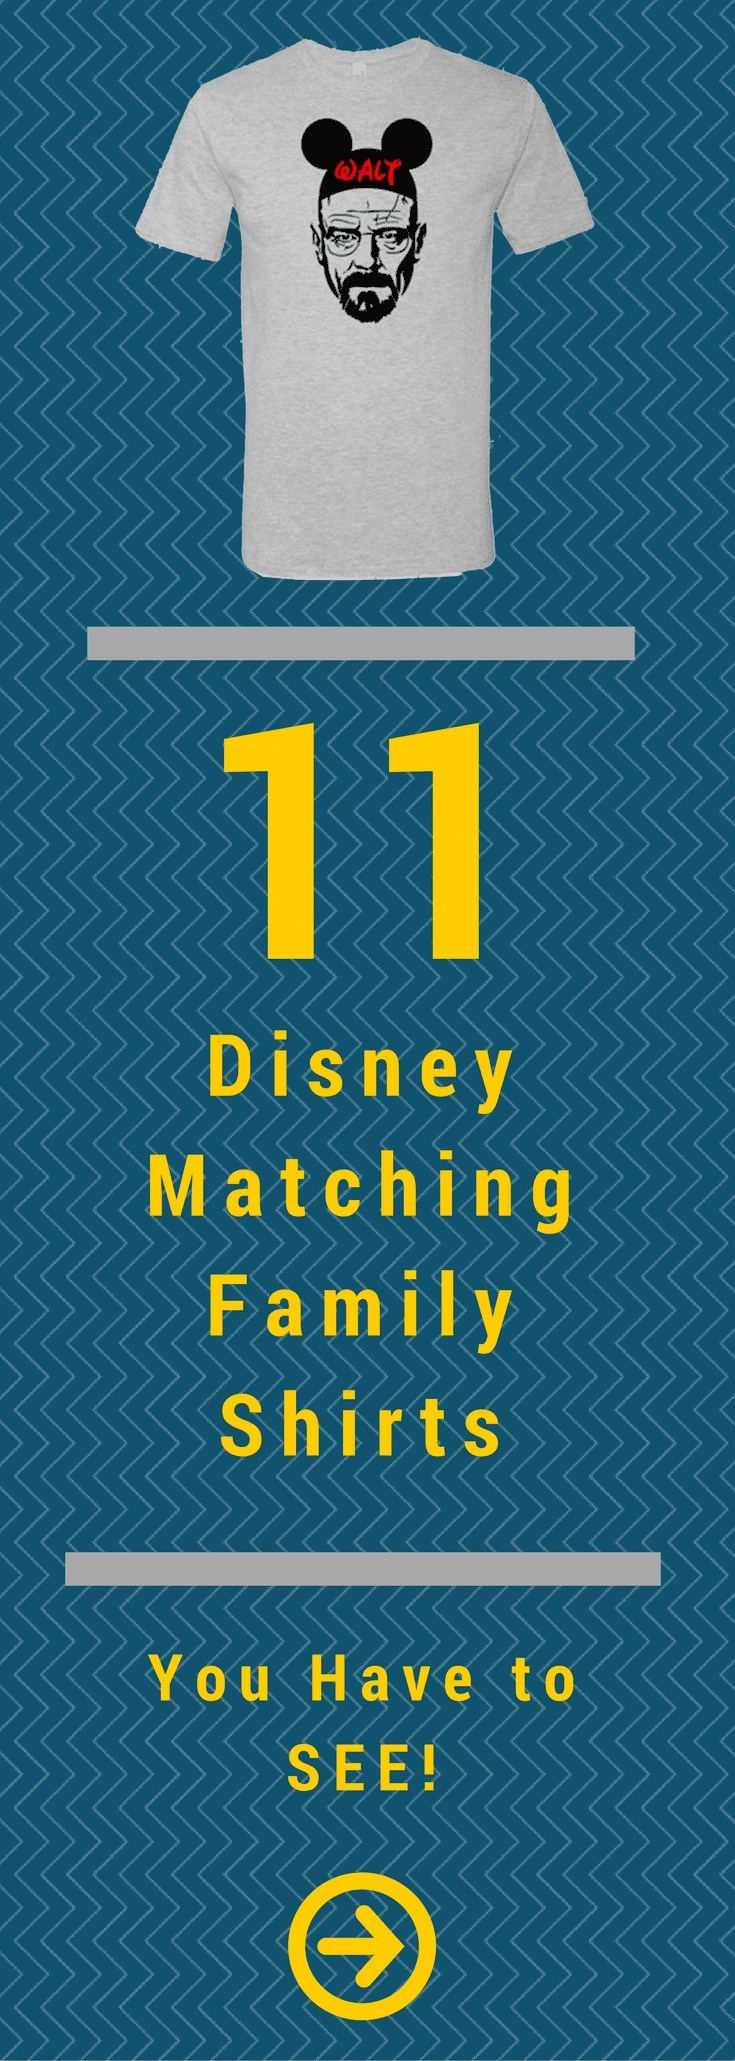 11 Disney Matching Family Shirts You Have to See! #disneyfamily #disney